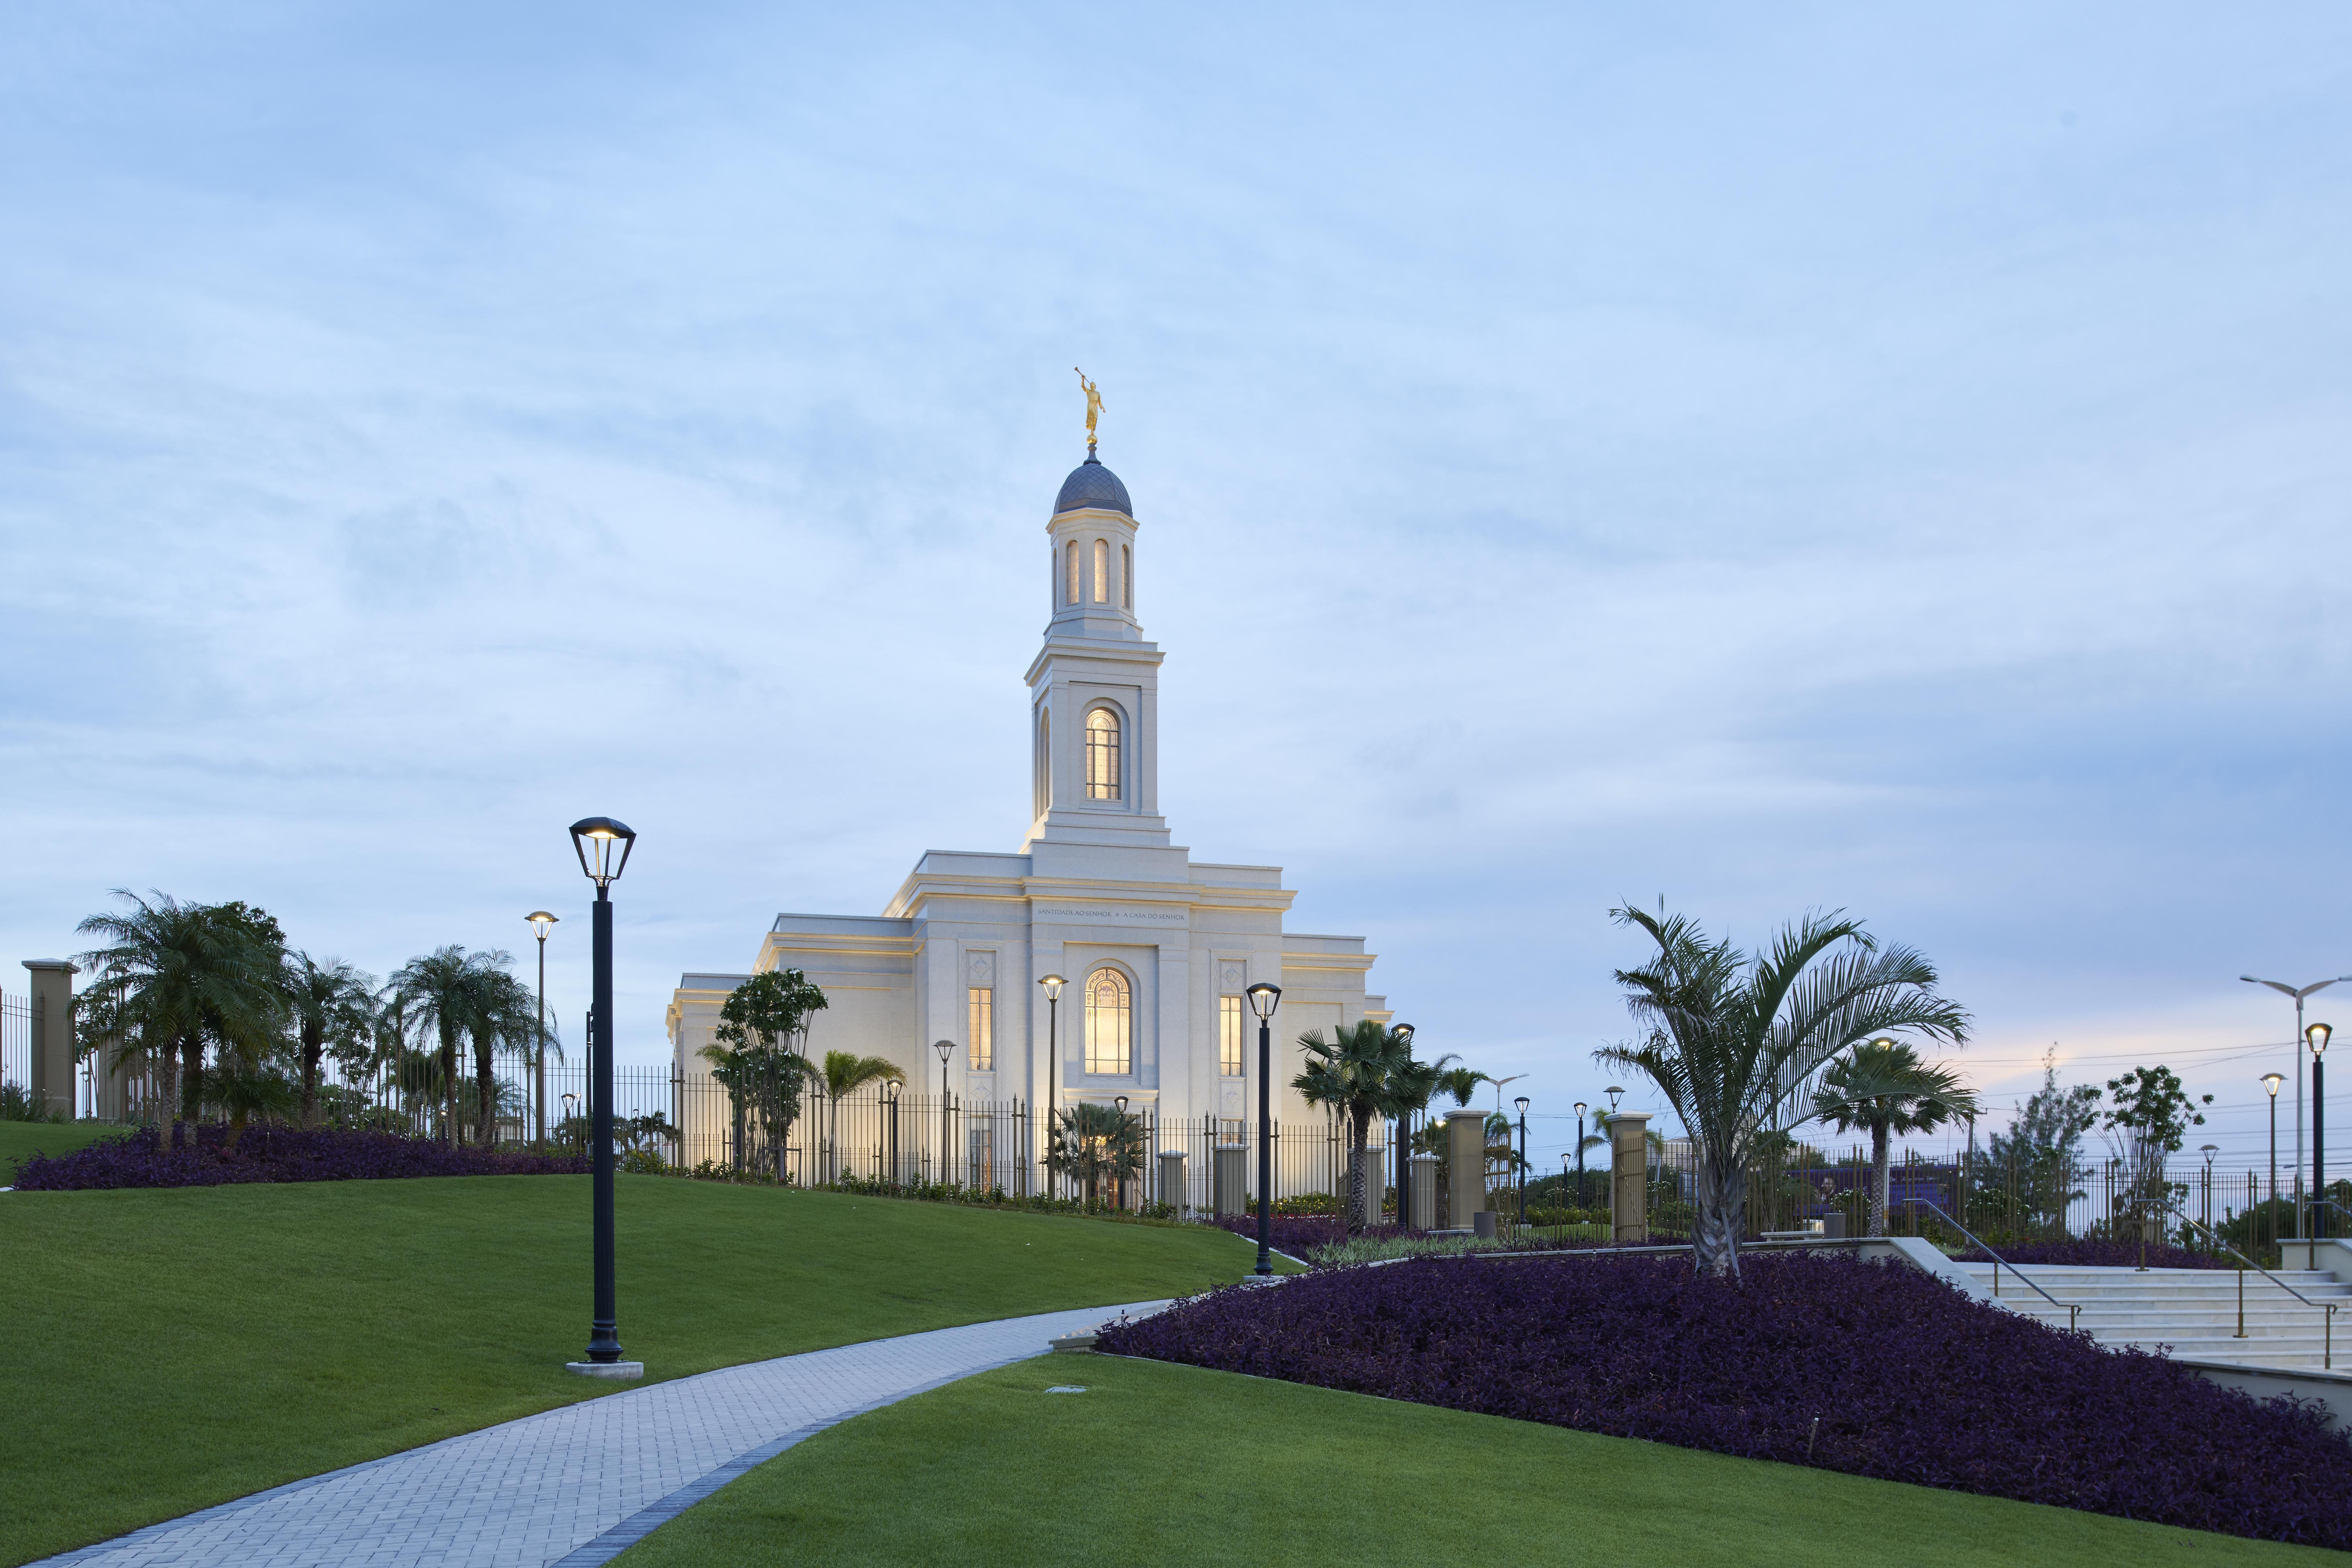 The Fortaleza Brazil Temple exterior and grounds.